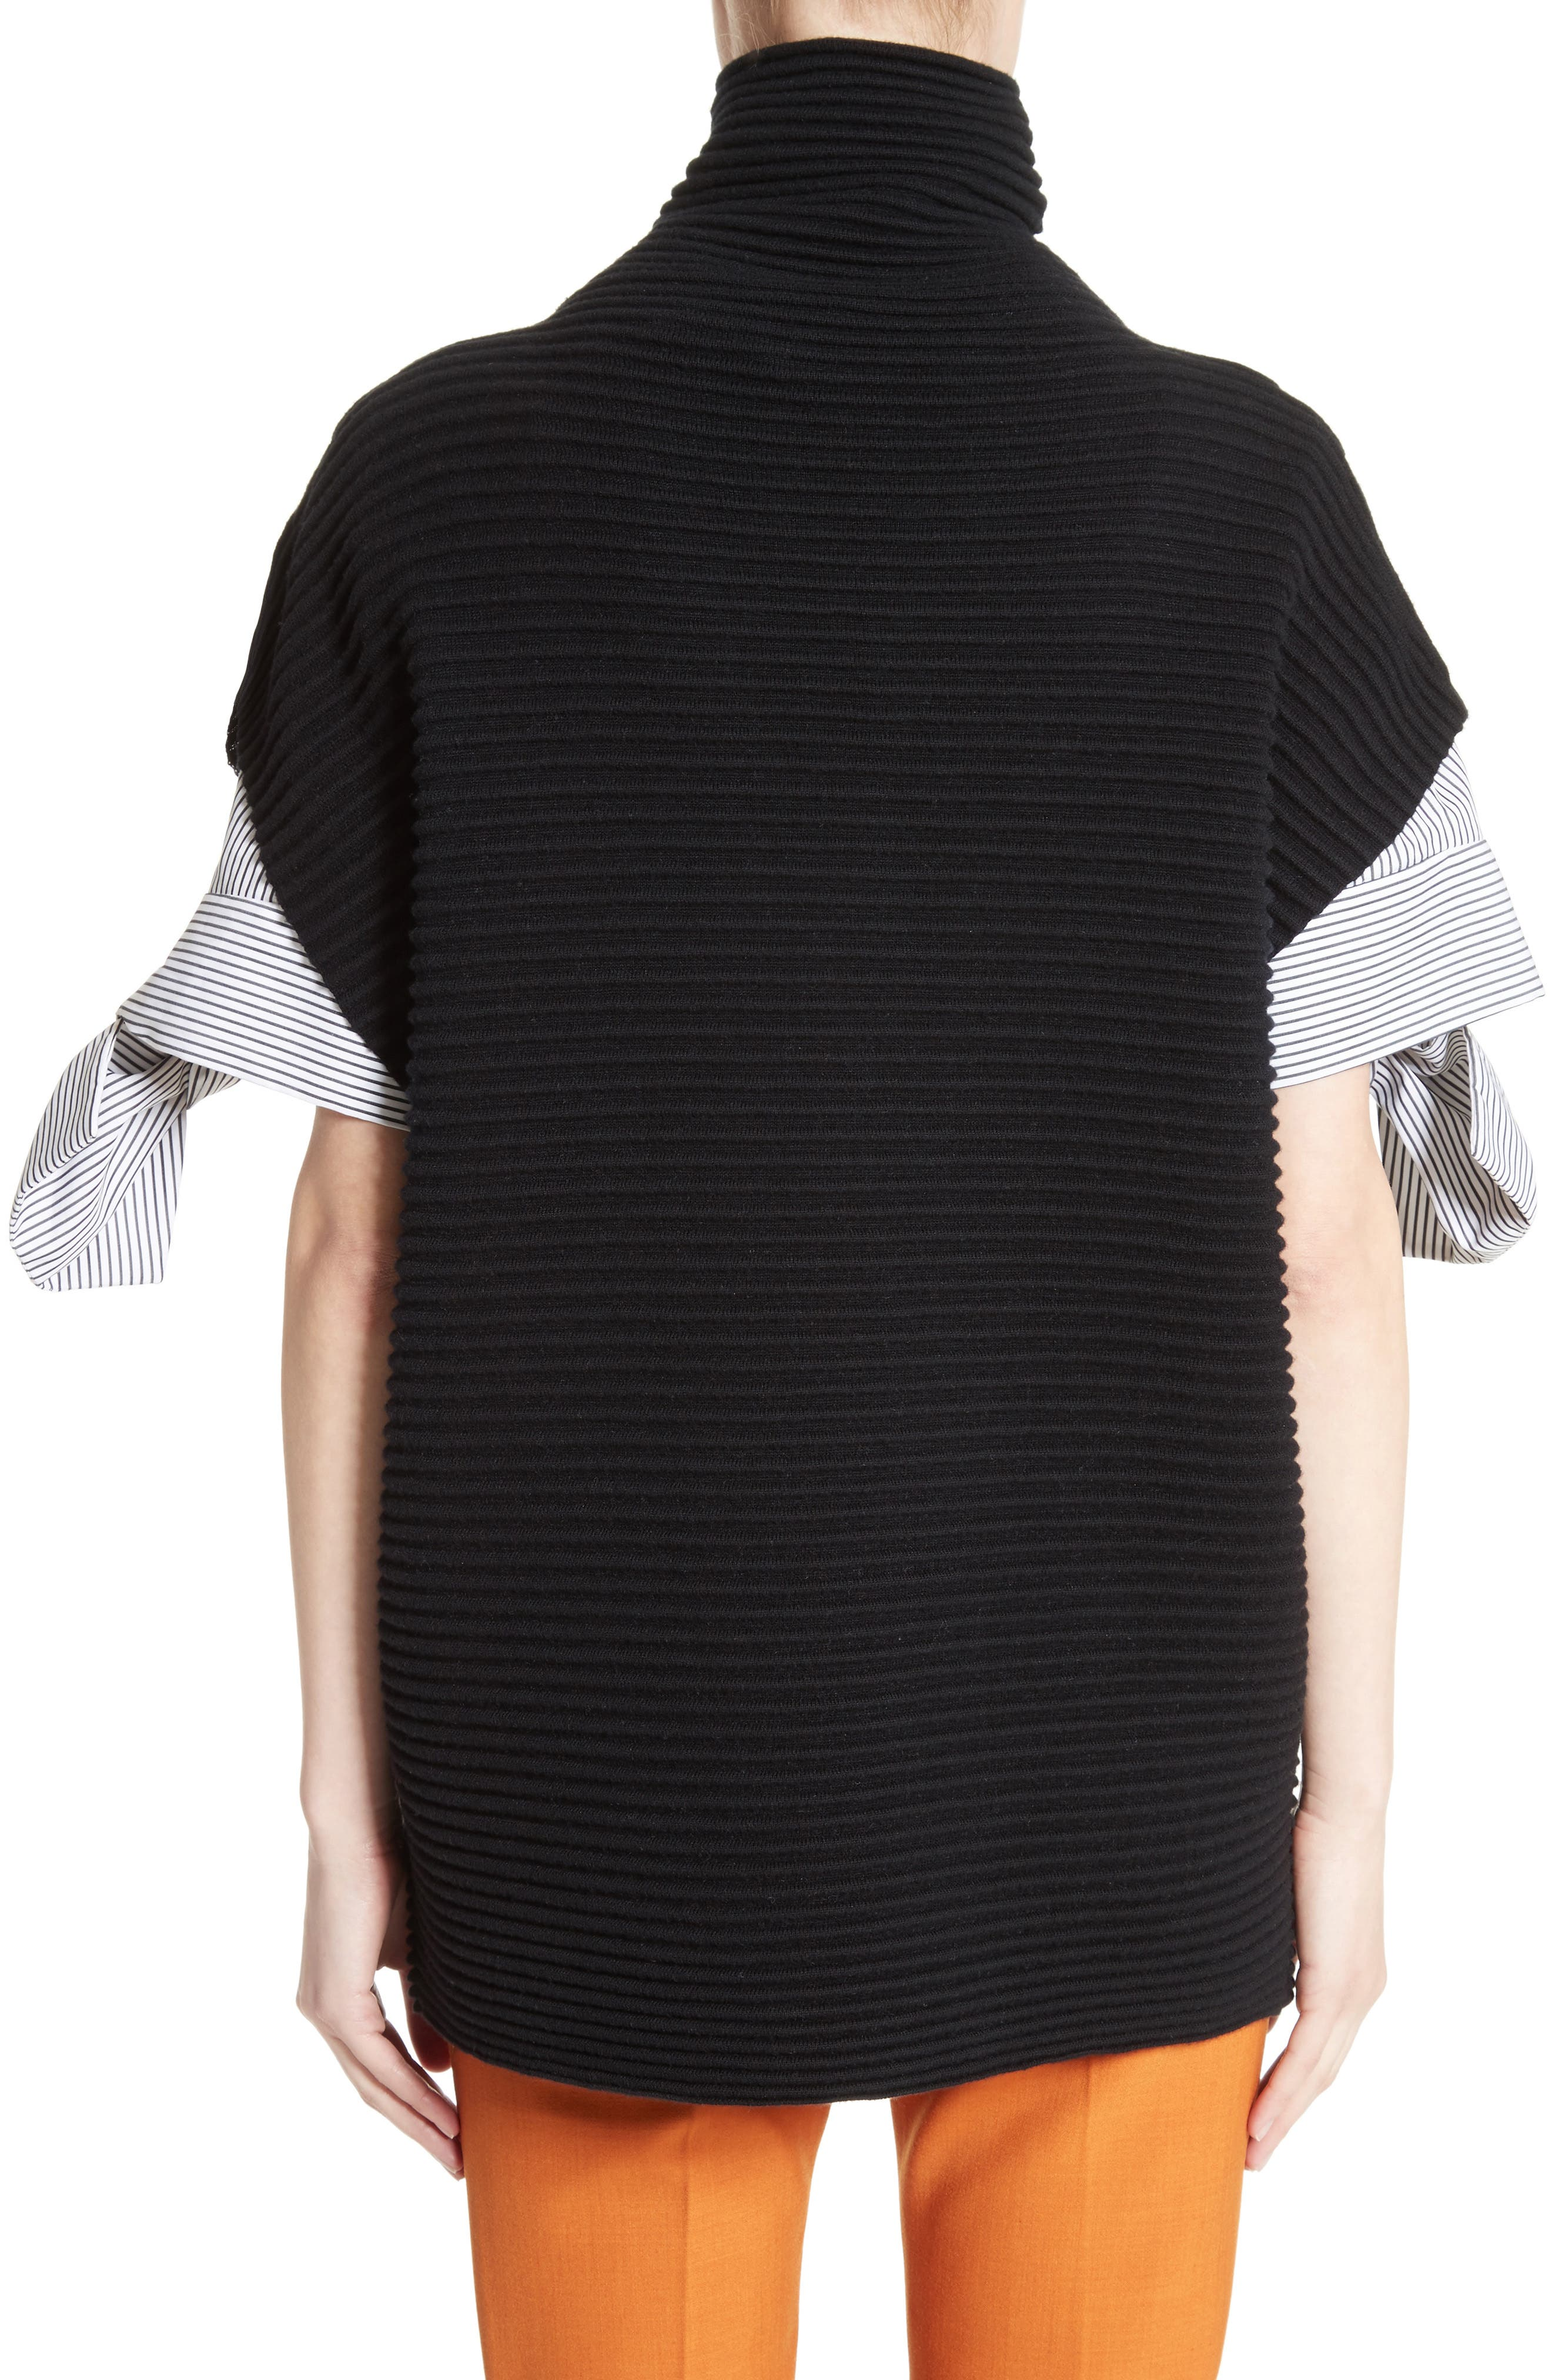 Bow Sleeve Funnel Neck Sweater,                             Alternate thumbnail 2, color,                             001